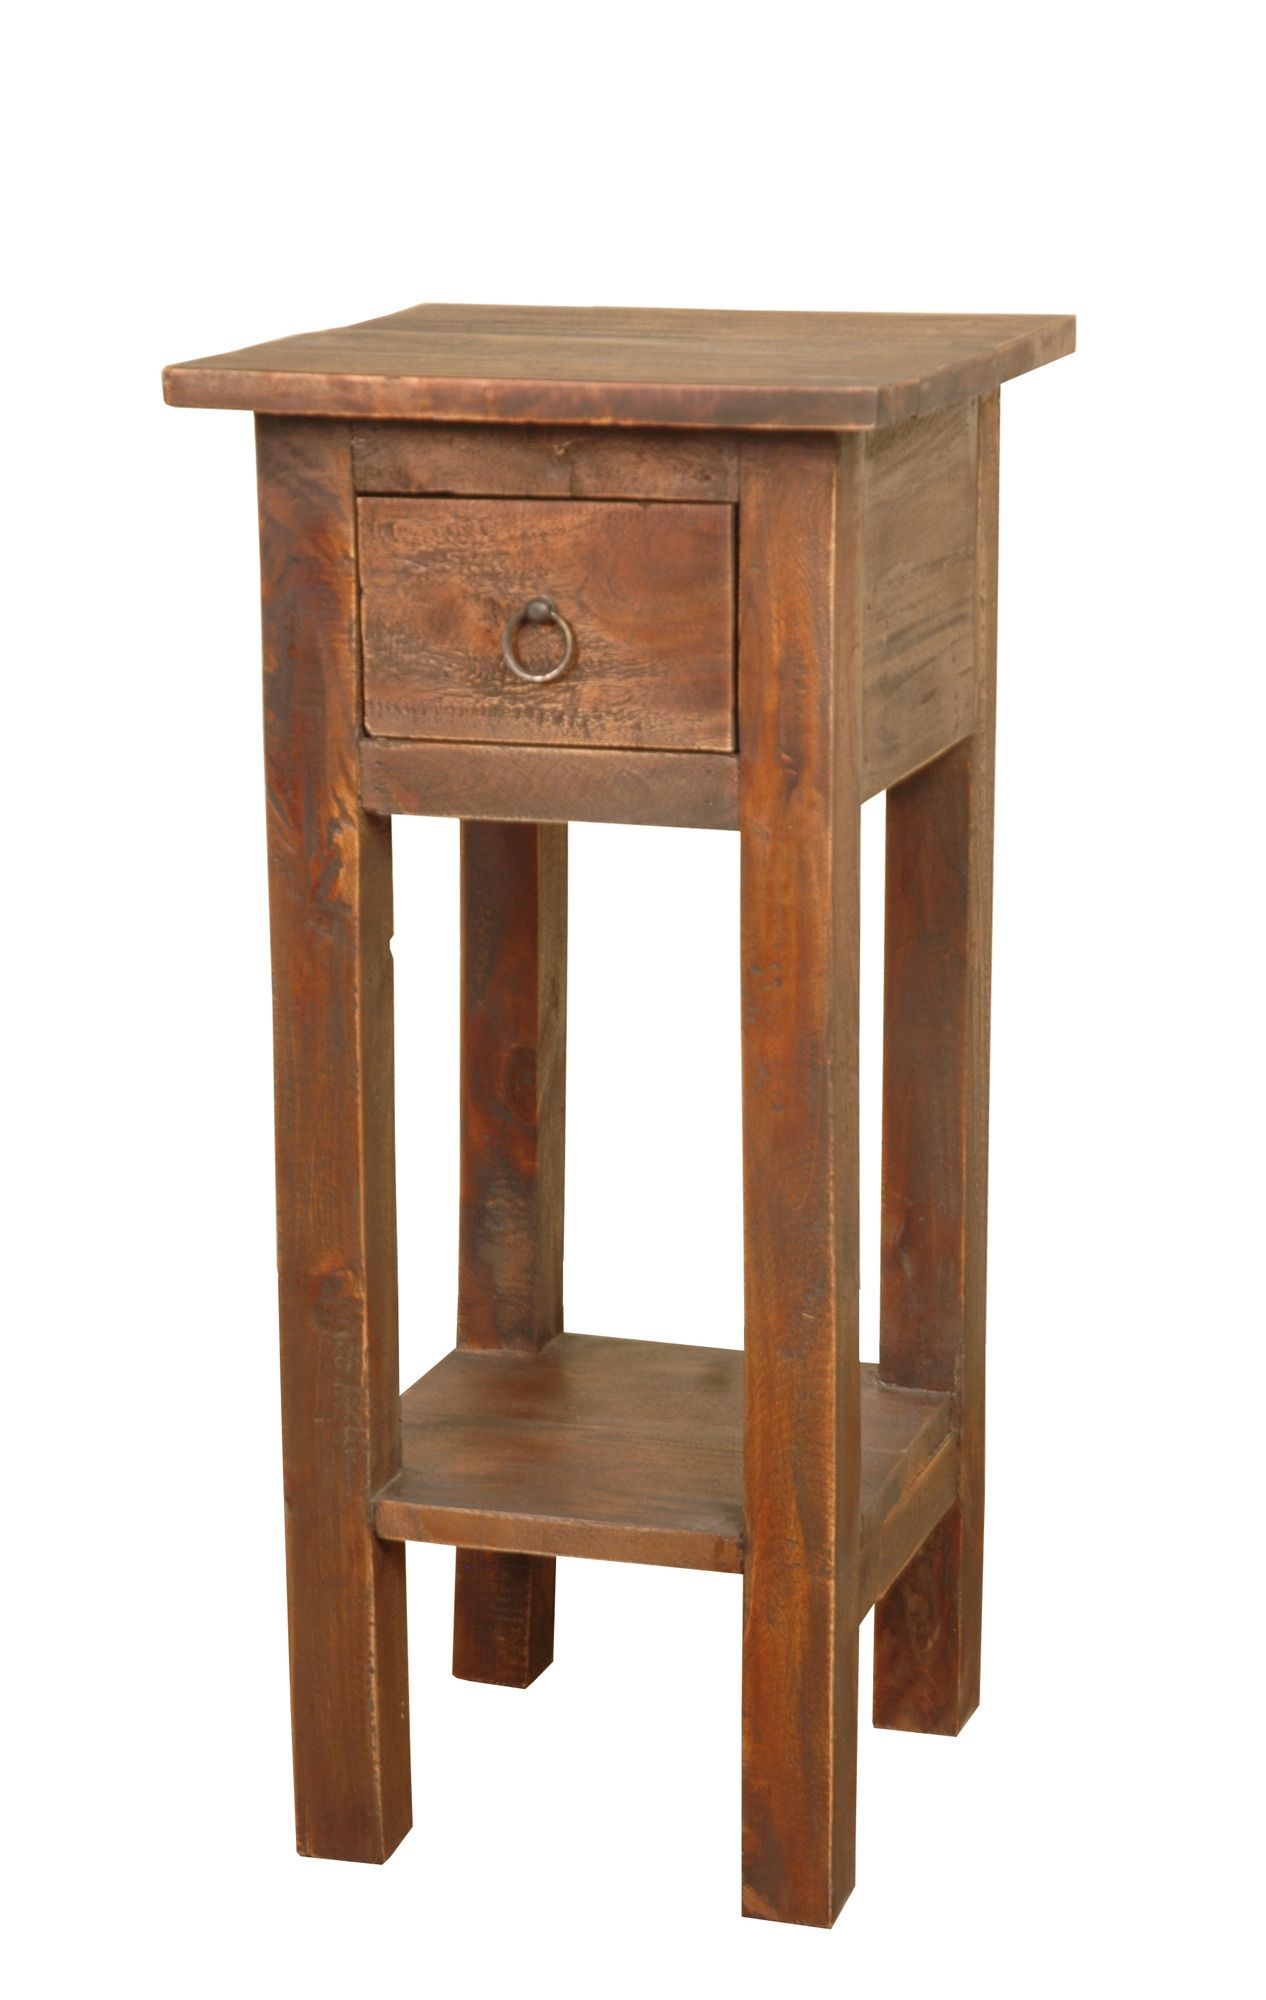 cottage narrow side table oak sunset trading home gallery bedroom end tables unfinished corner furniture ashley free shipping promo code stickley houston family room coffee decor